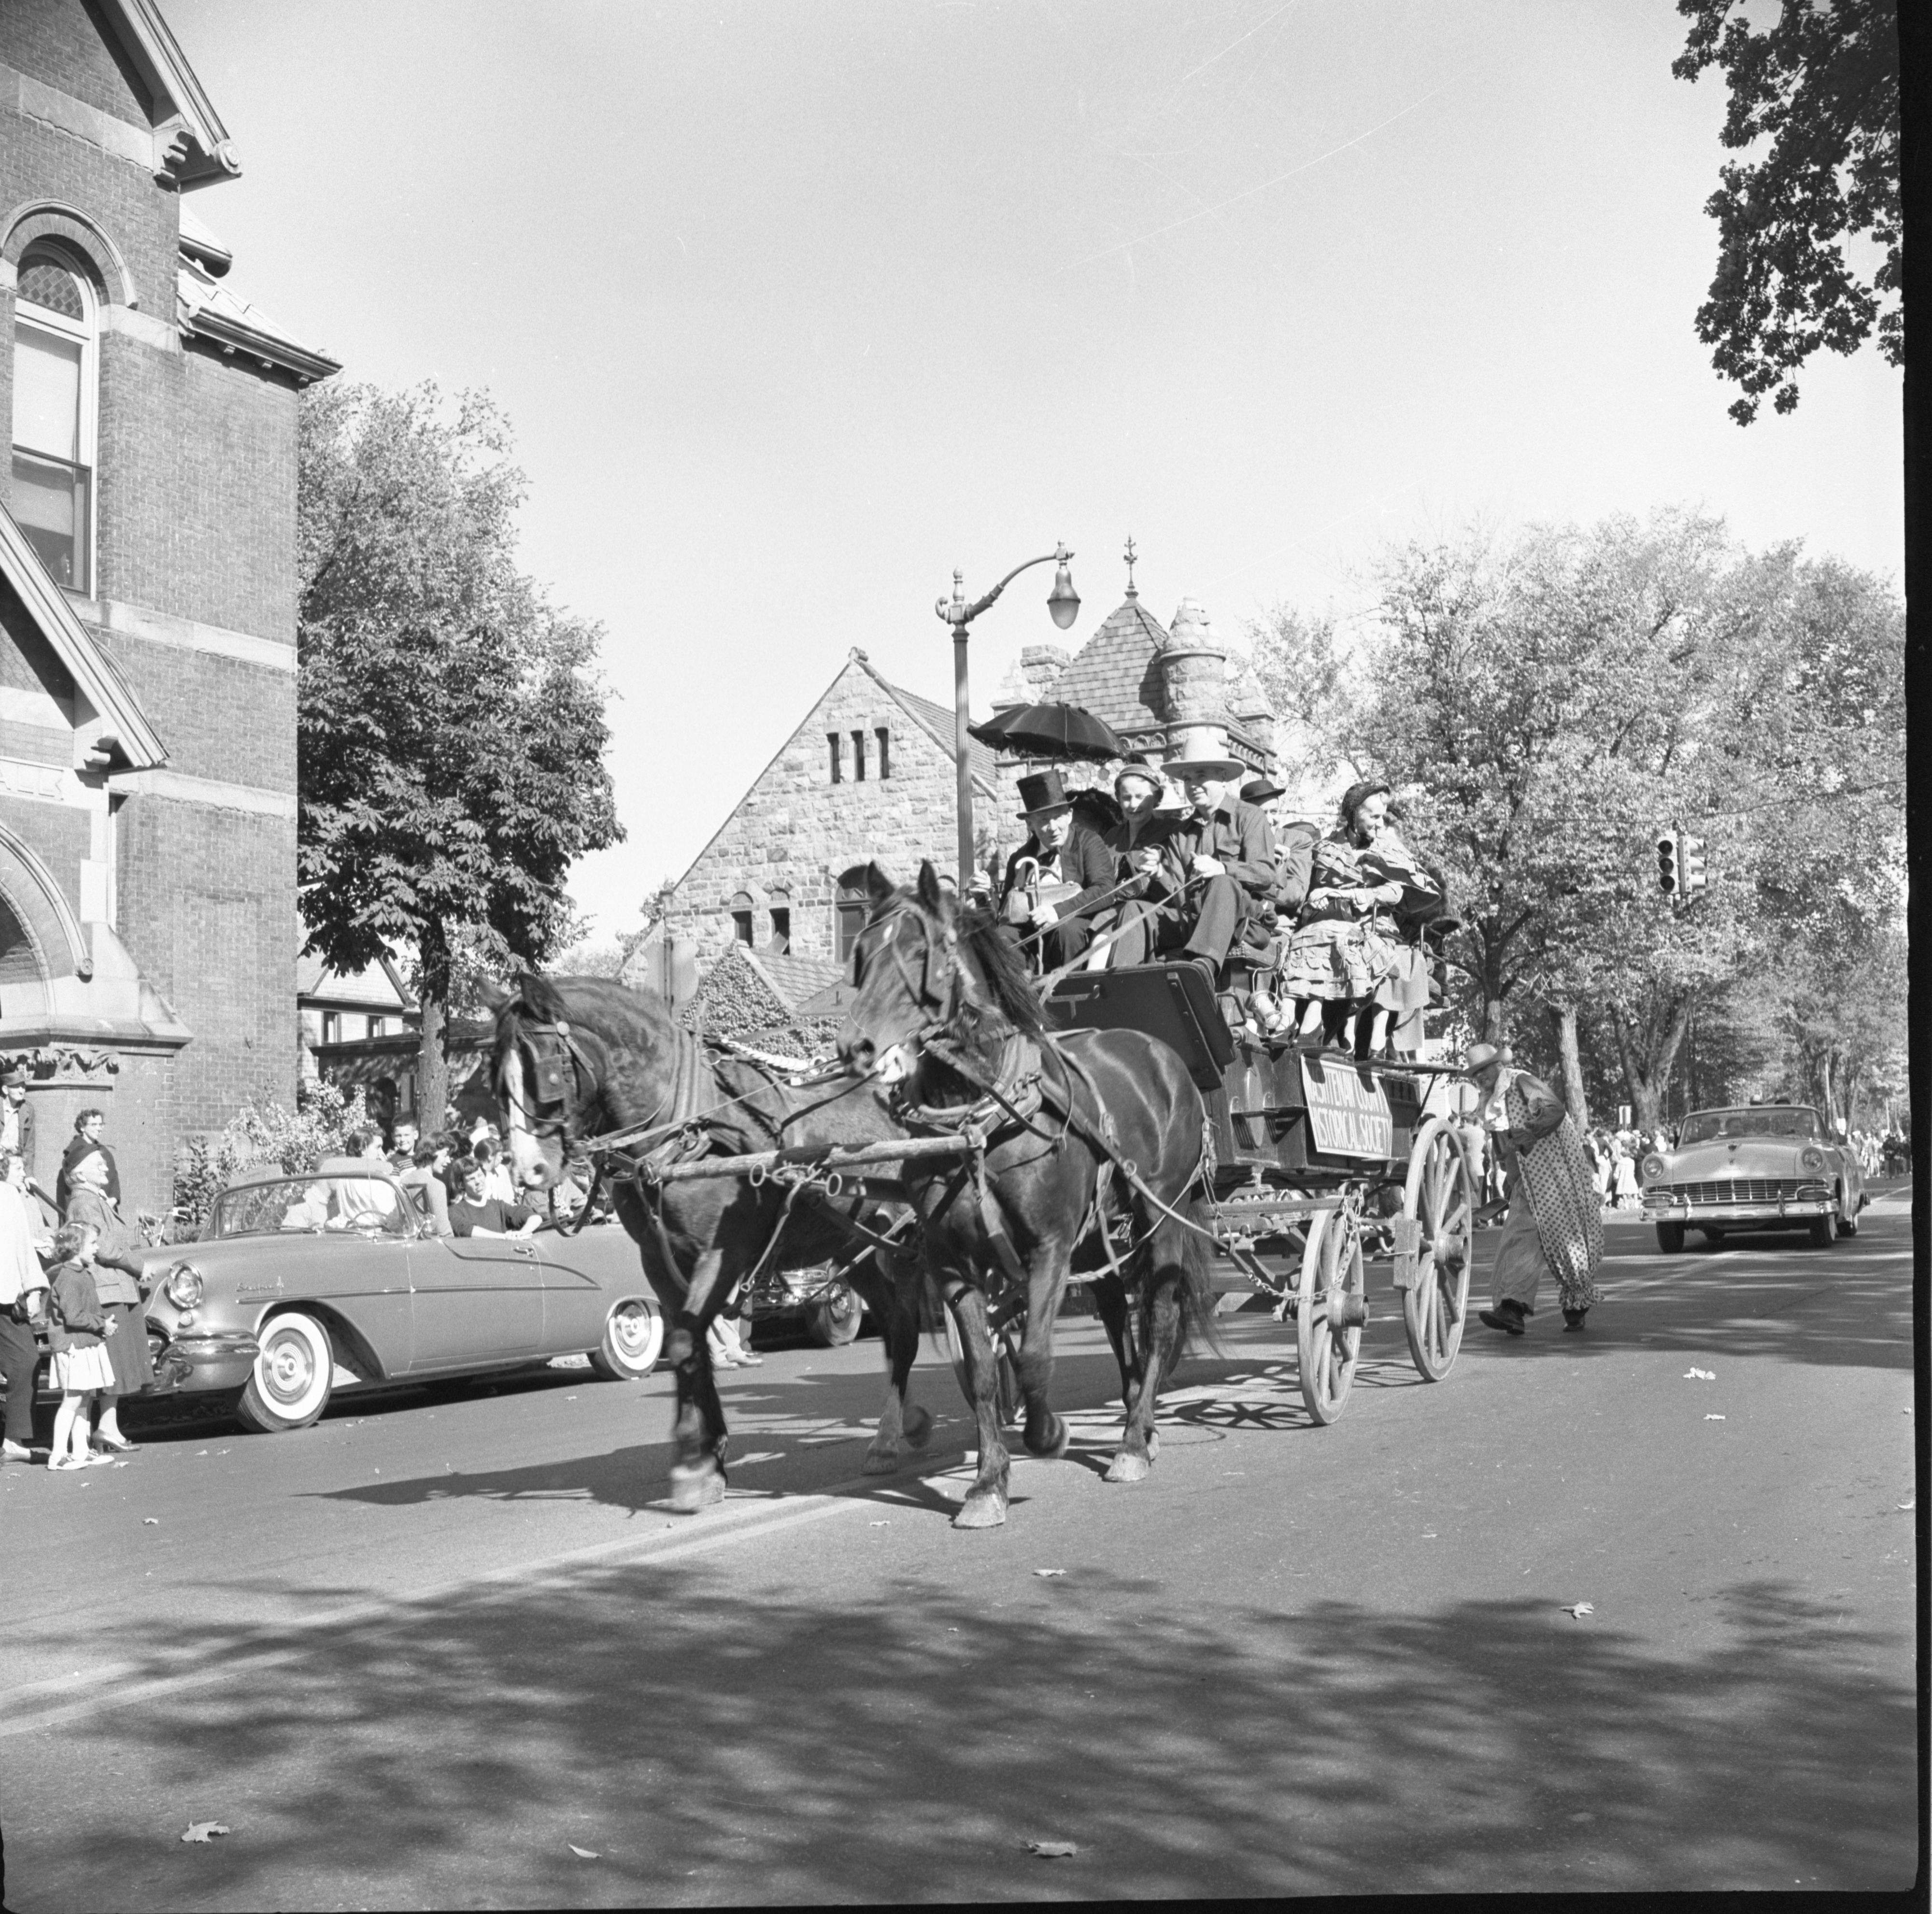 Washtenaw Historical Society Members Ride In The Washtenaw County Building Dedication Parade, October 1956 image